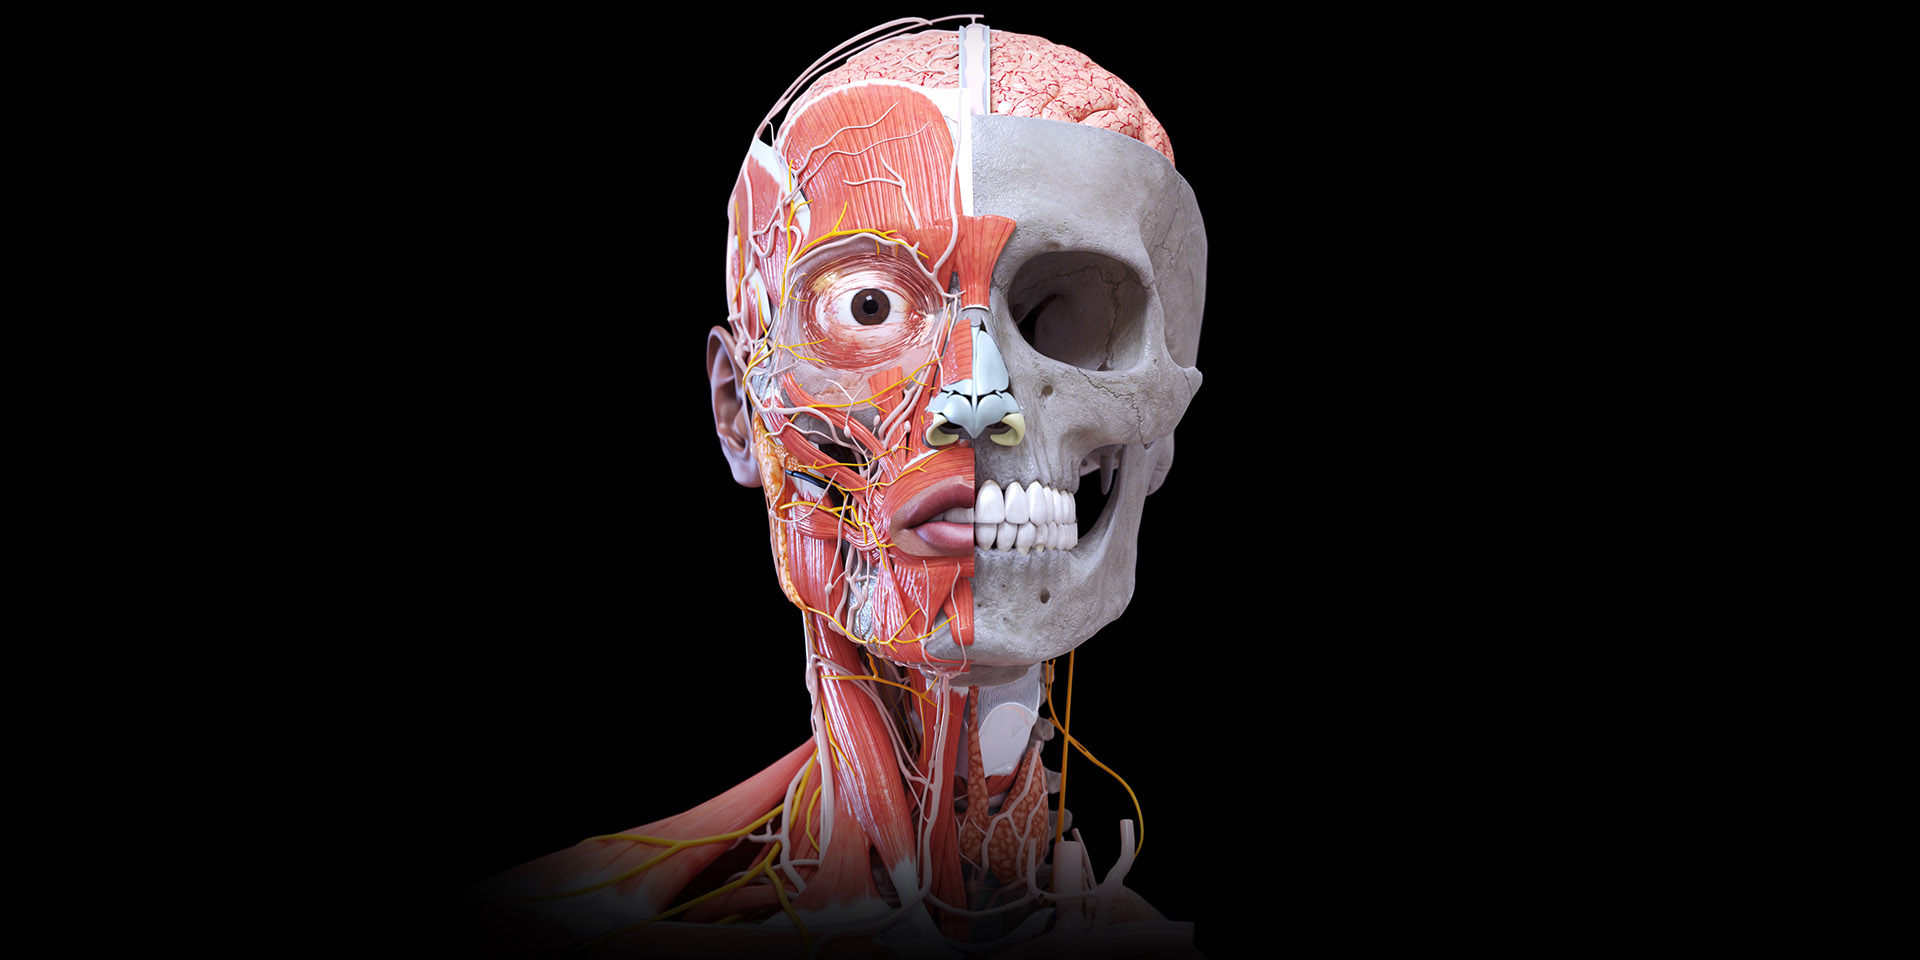 The Best Ipad Apps For Toddlers New Atlas >> Anatomy 3d Atlas Anatomy 3d Atlas Human Anatomy Apps